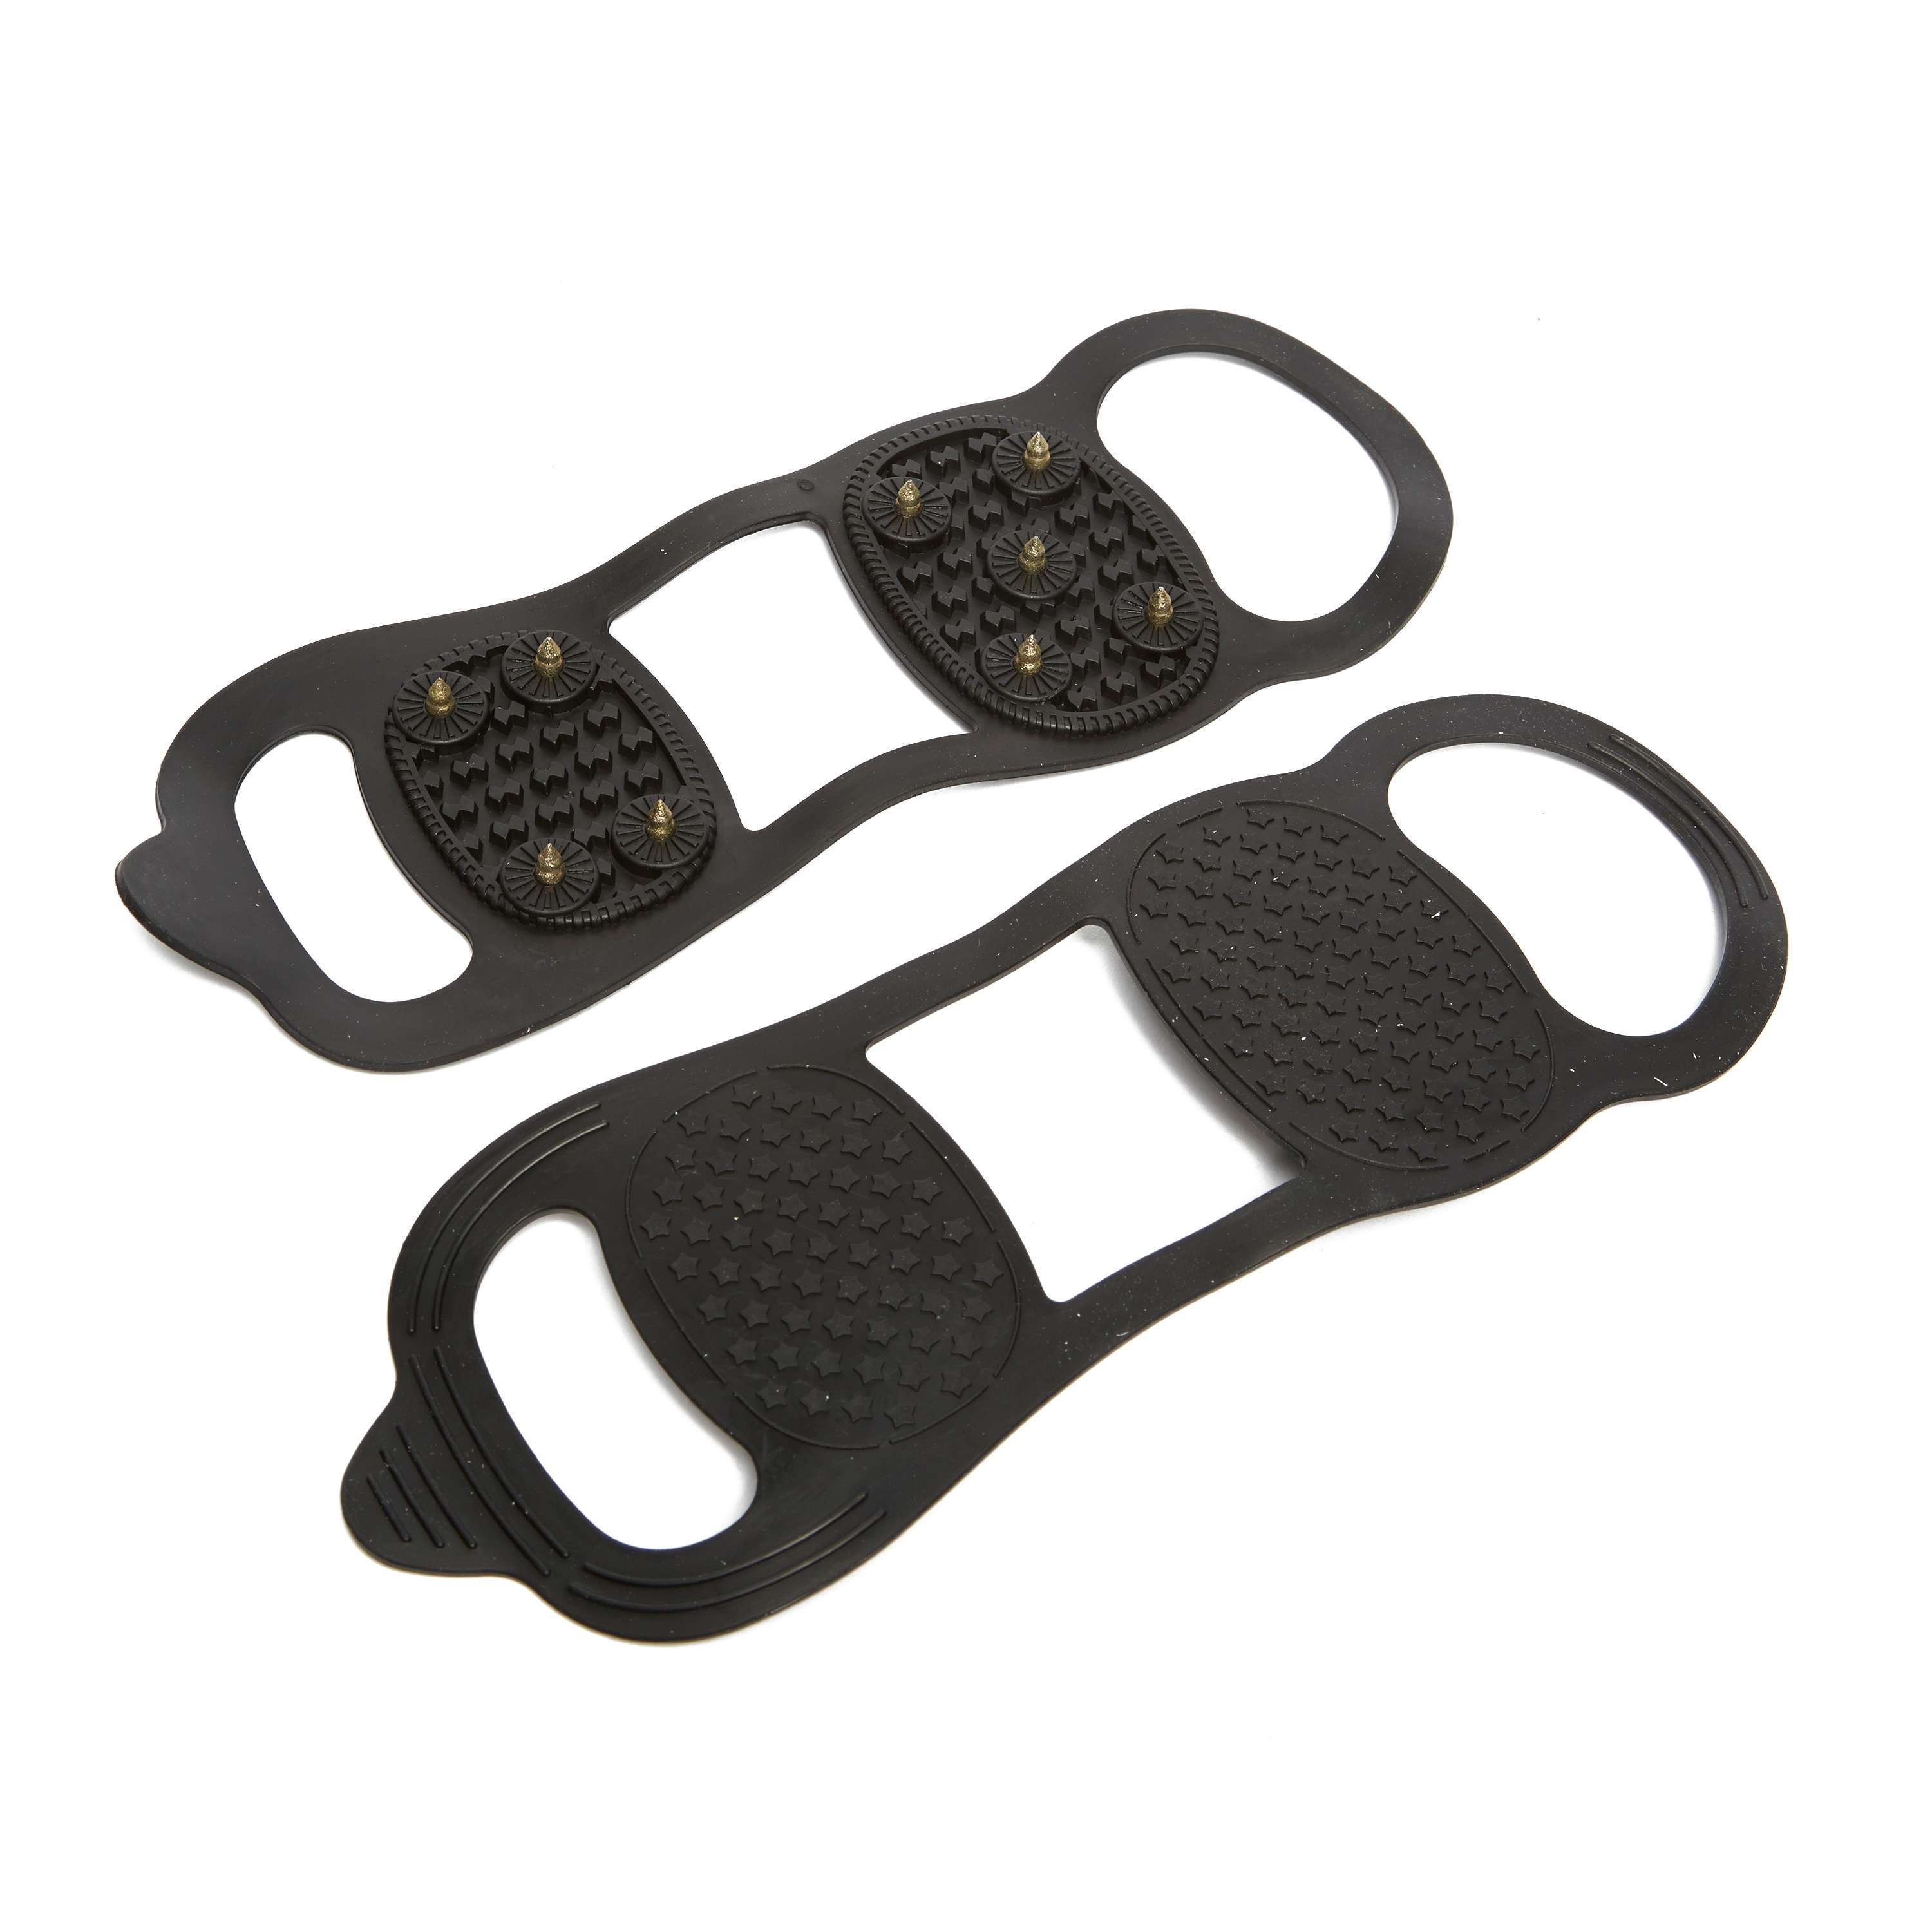 HIGHLANDER Snow & Ice Grippers